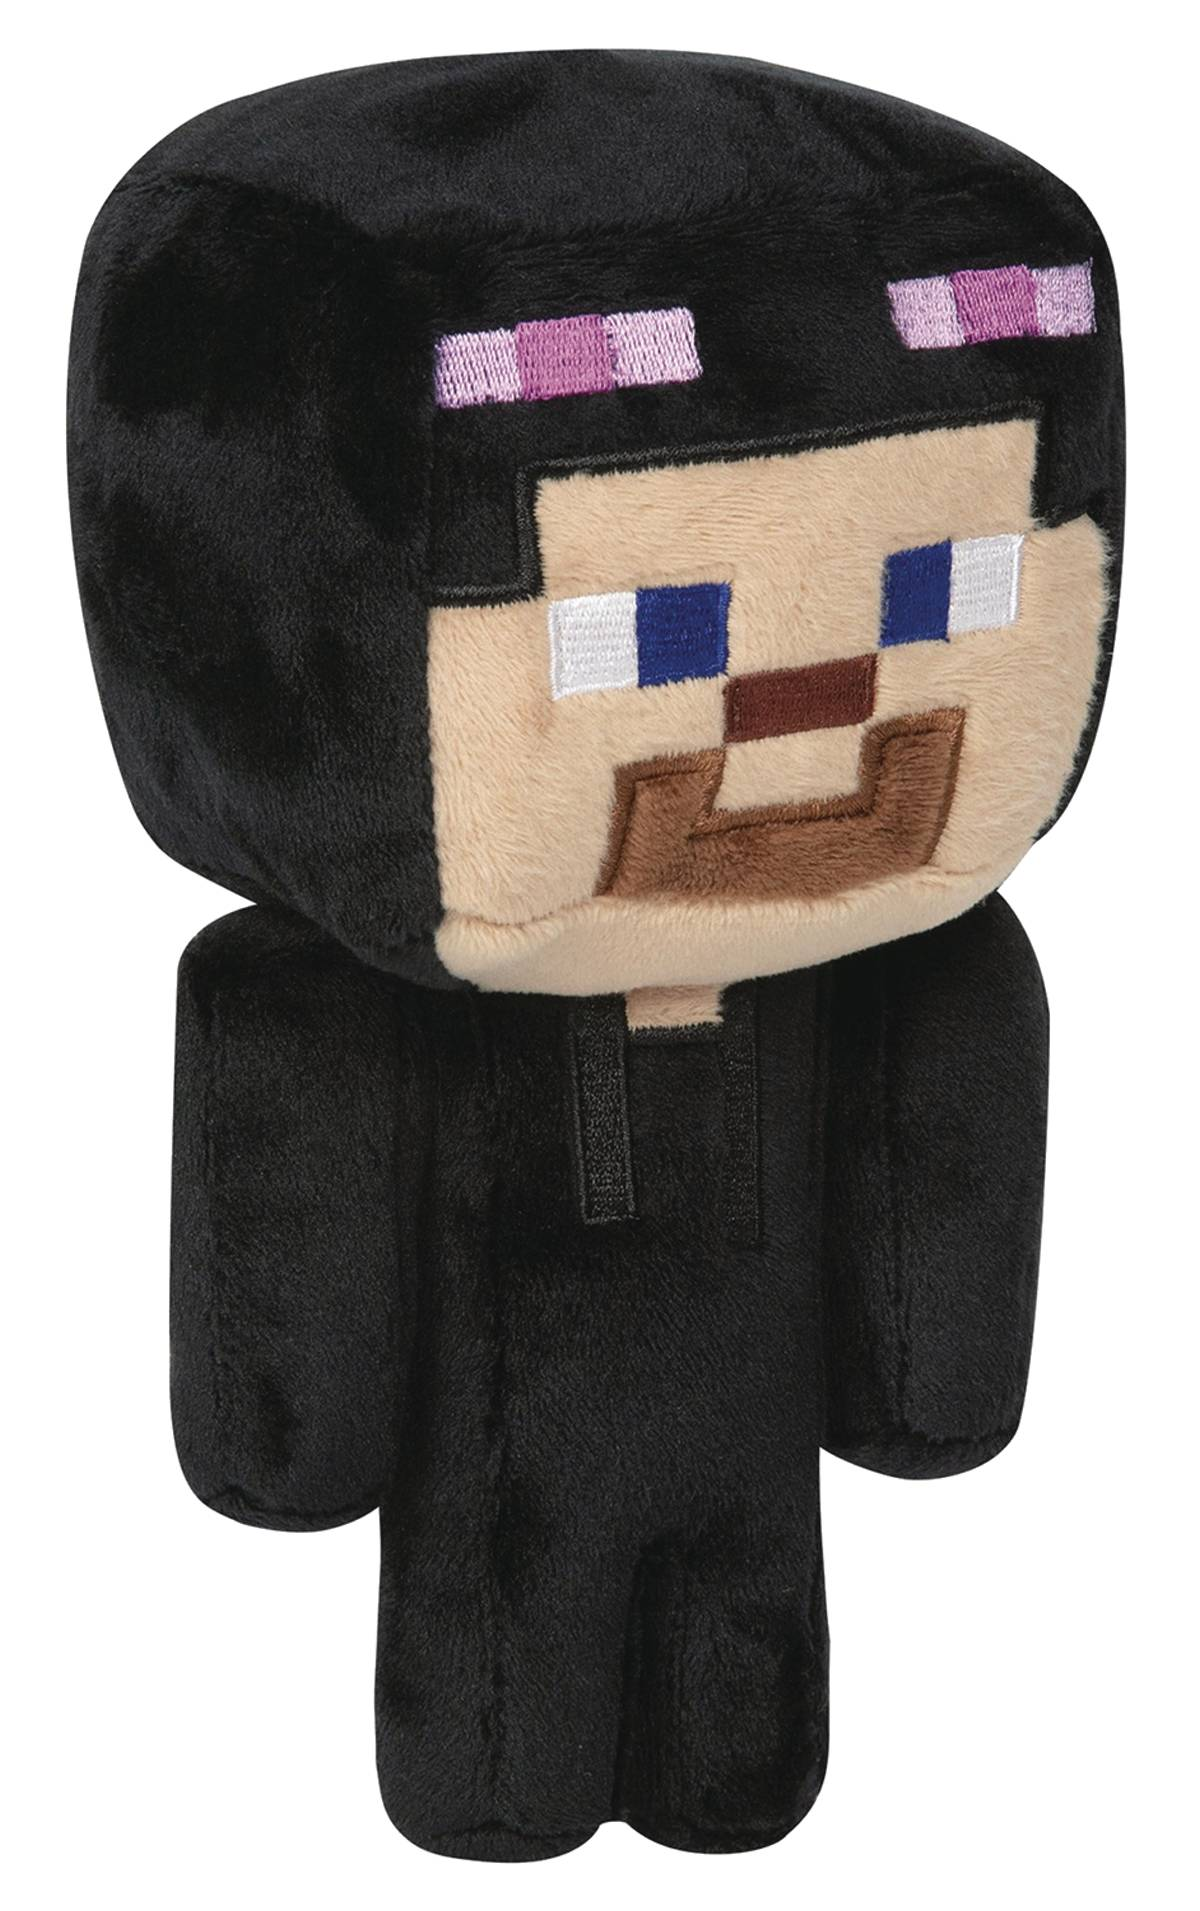 MINECRAFT STEVE IN ENDERMAN COSTUME 7IN PLUSH